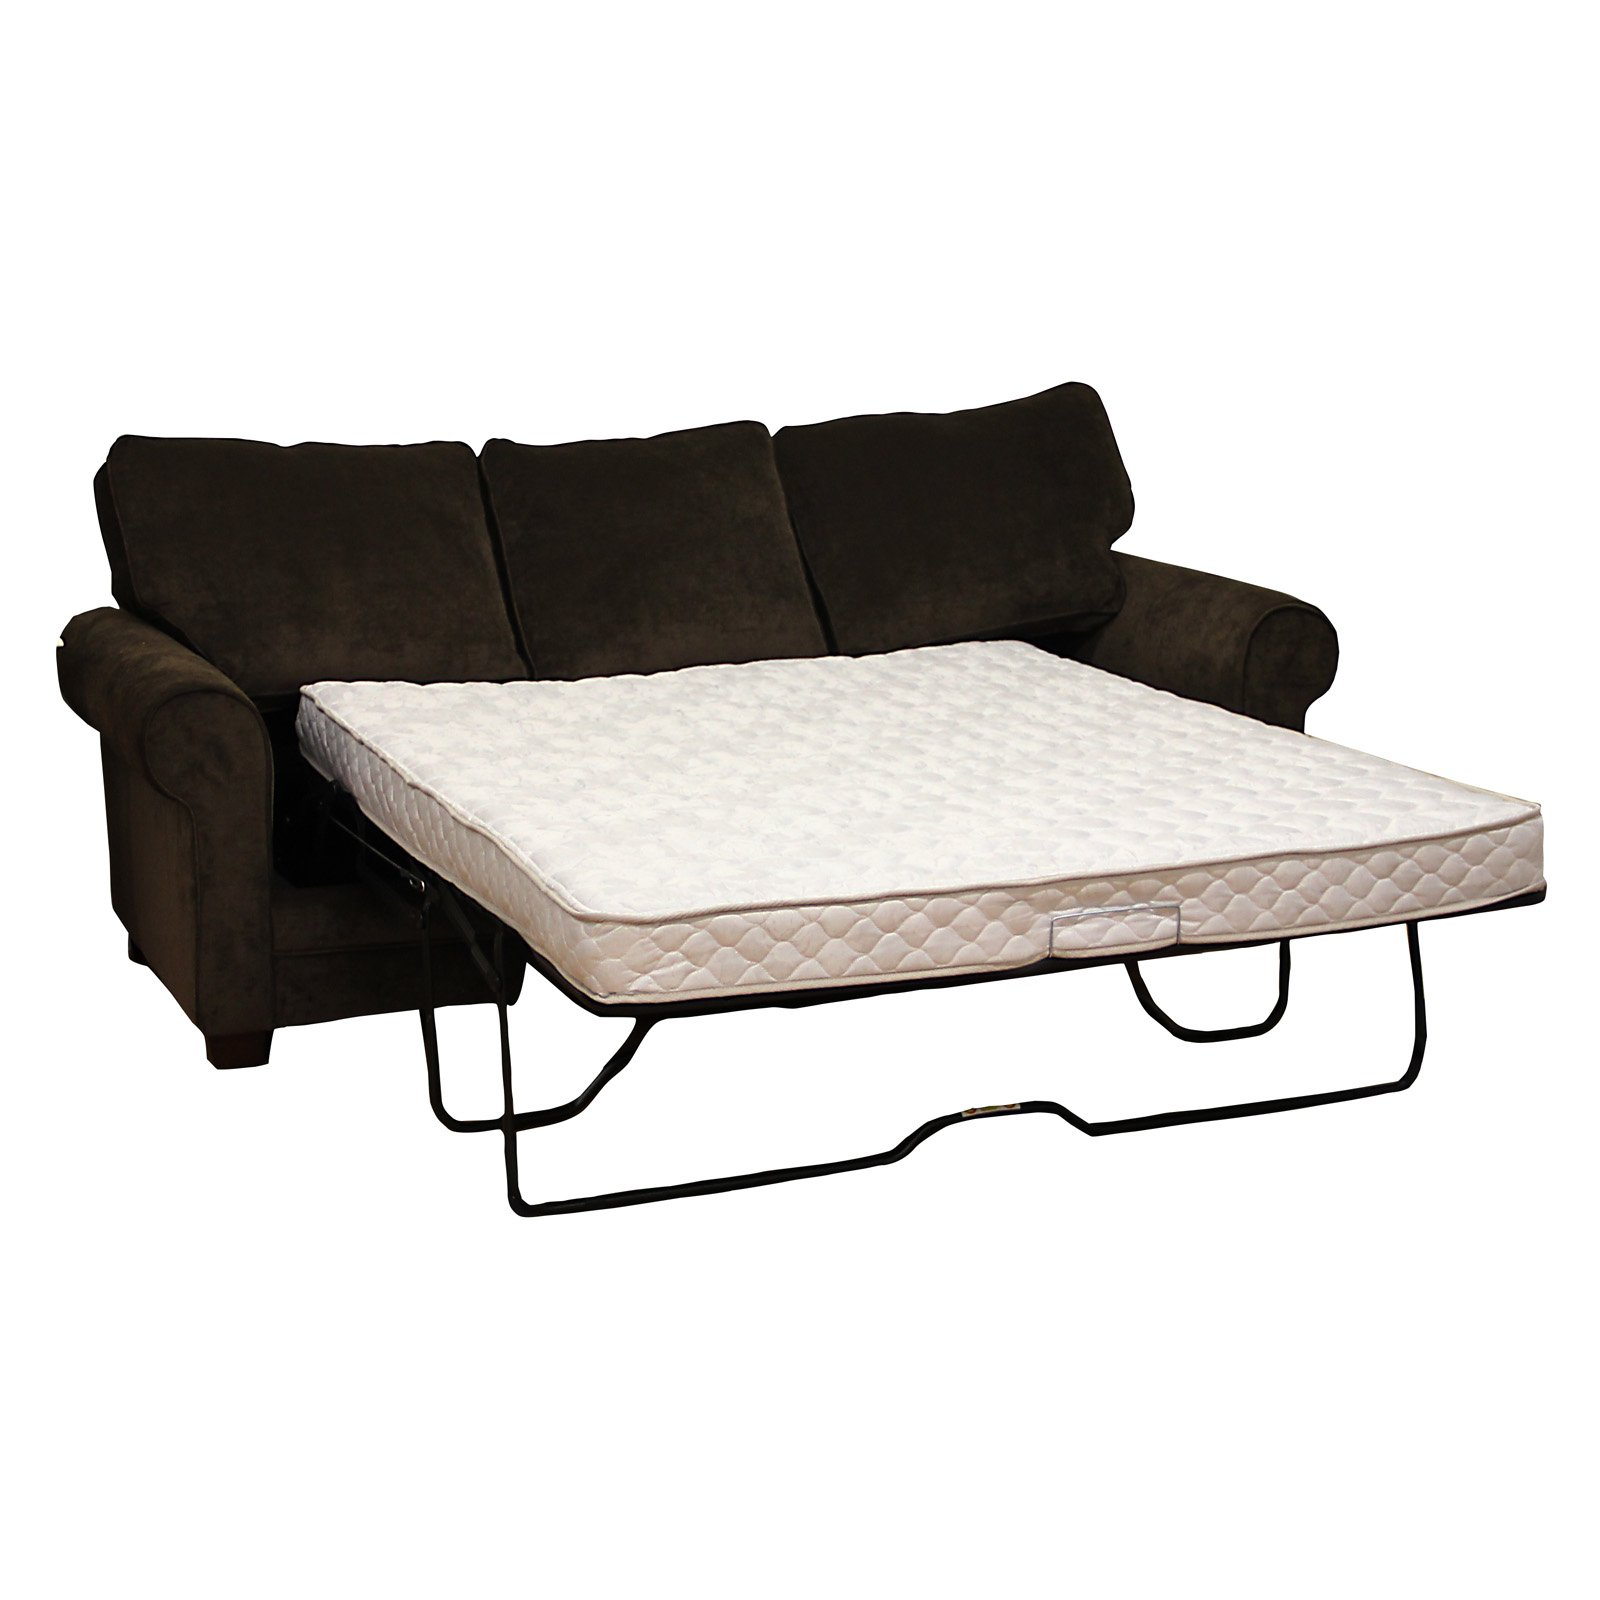 Beau Plush Sofa Bed Mattress   Walmart.com